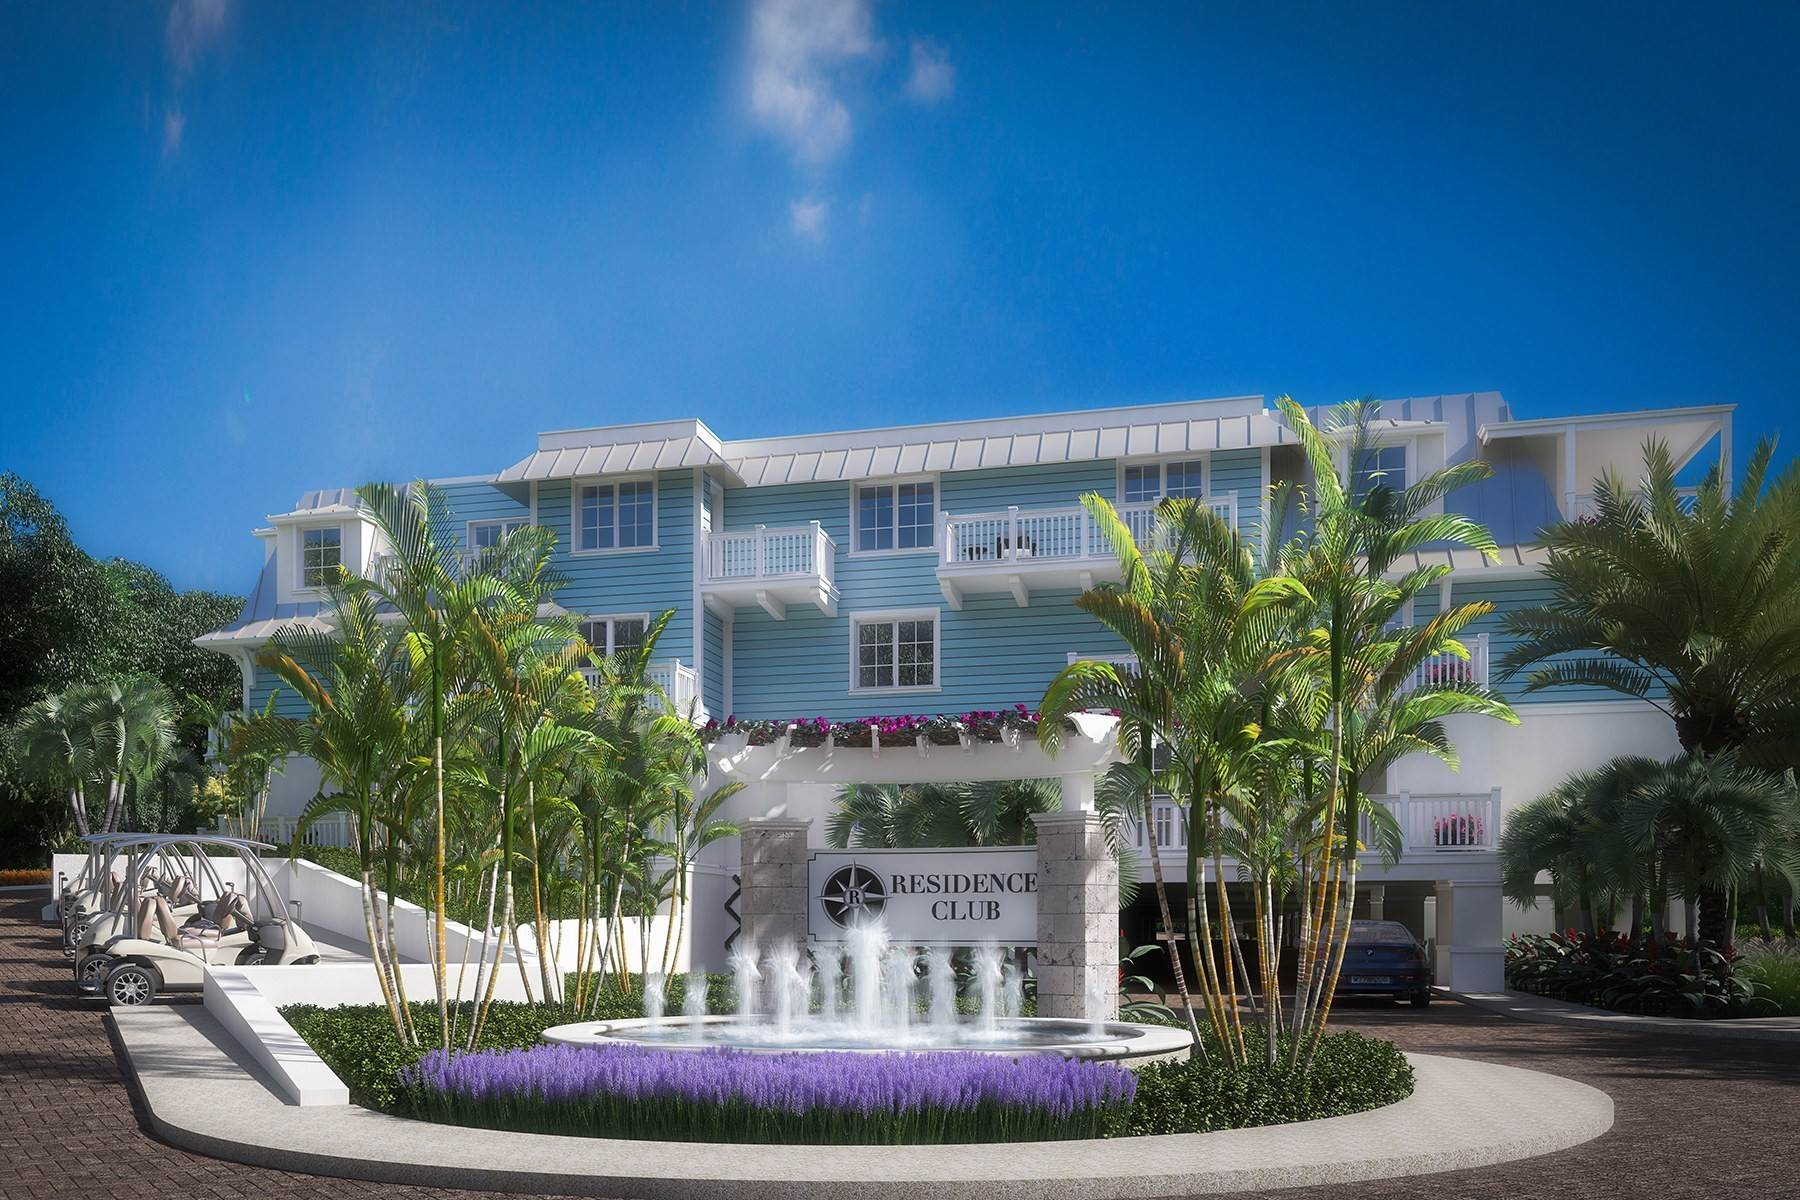 Condominiums for Sale at 120 Residence Lane, C-120 Key Largo, Florida 33037 United States